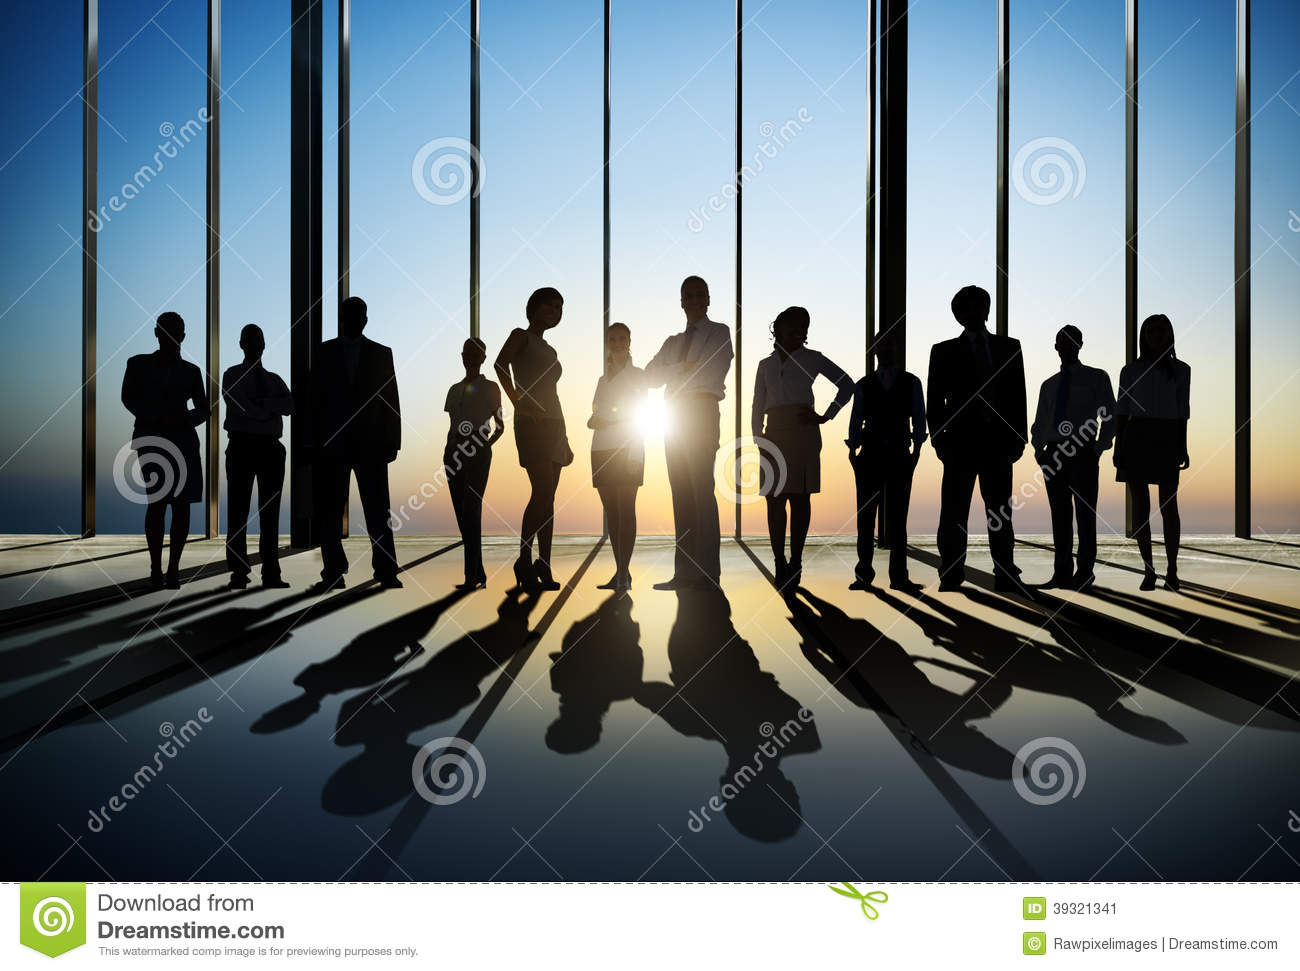 Confident Silhouette Of Business People Posing For The Camera In